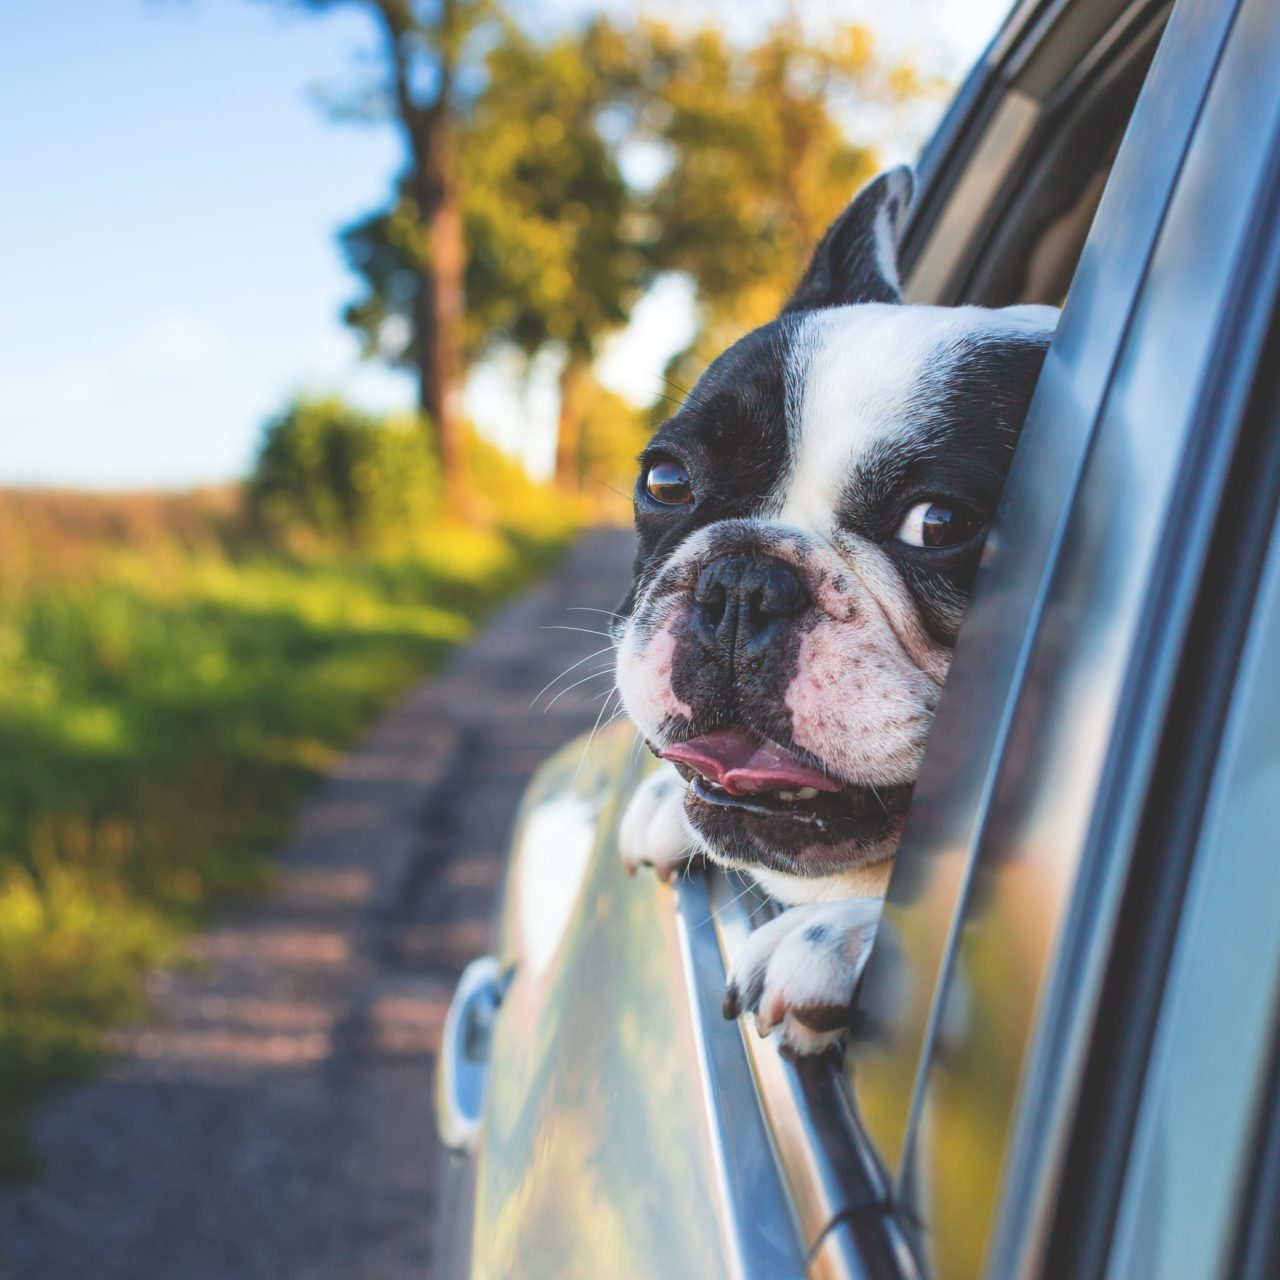 Dog sticking its head out car window for commitment to environment on services page, Dent Busters in Tucson, Arizona